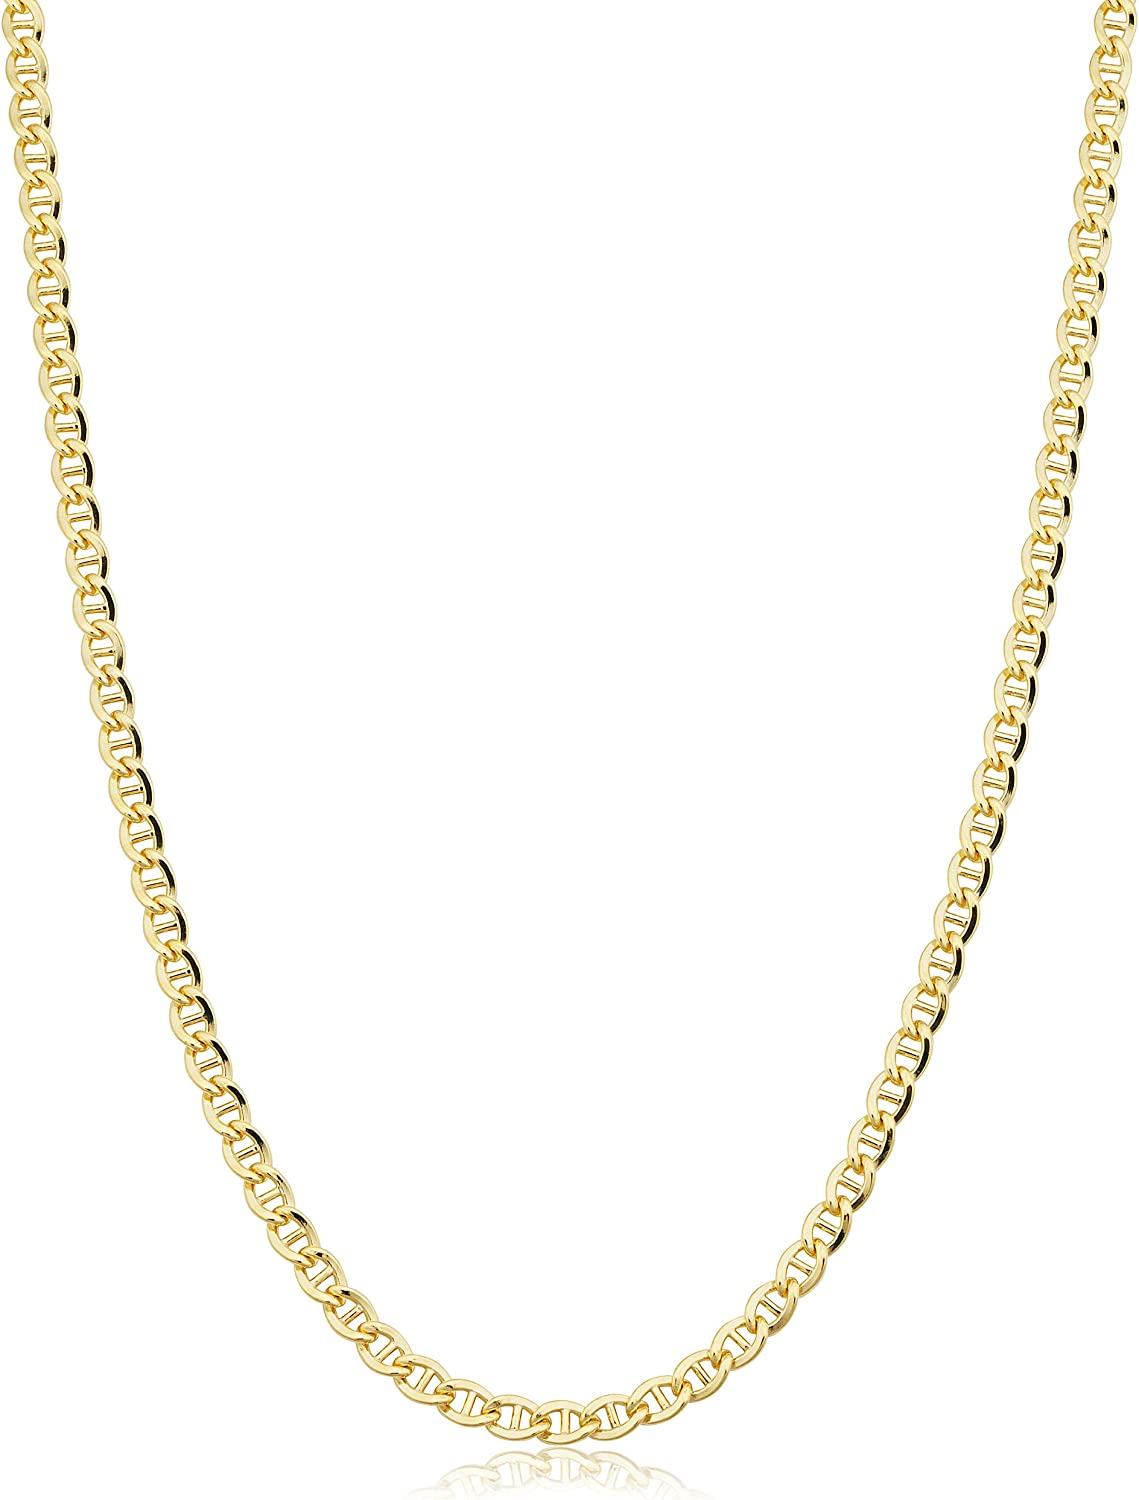 Solid 14k Yellow Gold Filled 3.4 mm Mariner Link Chain Necklace for Men and Women (16-36 inch)